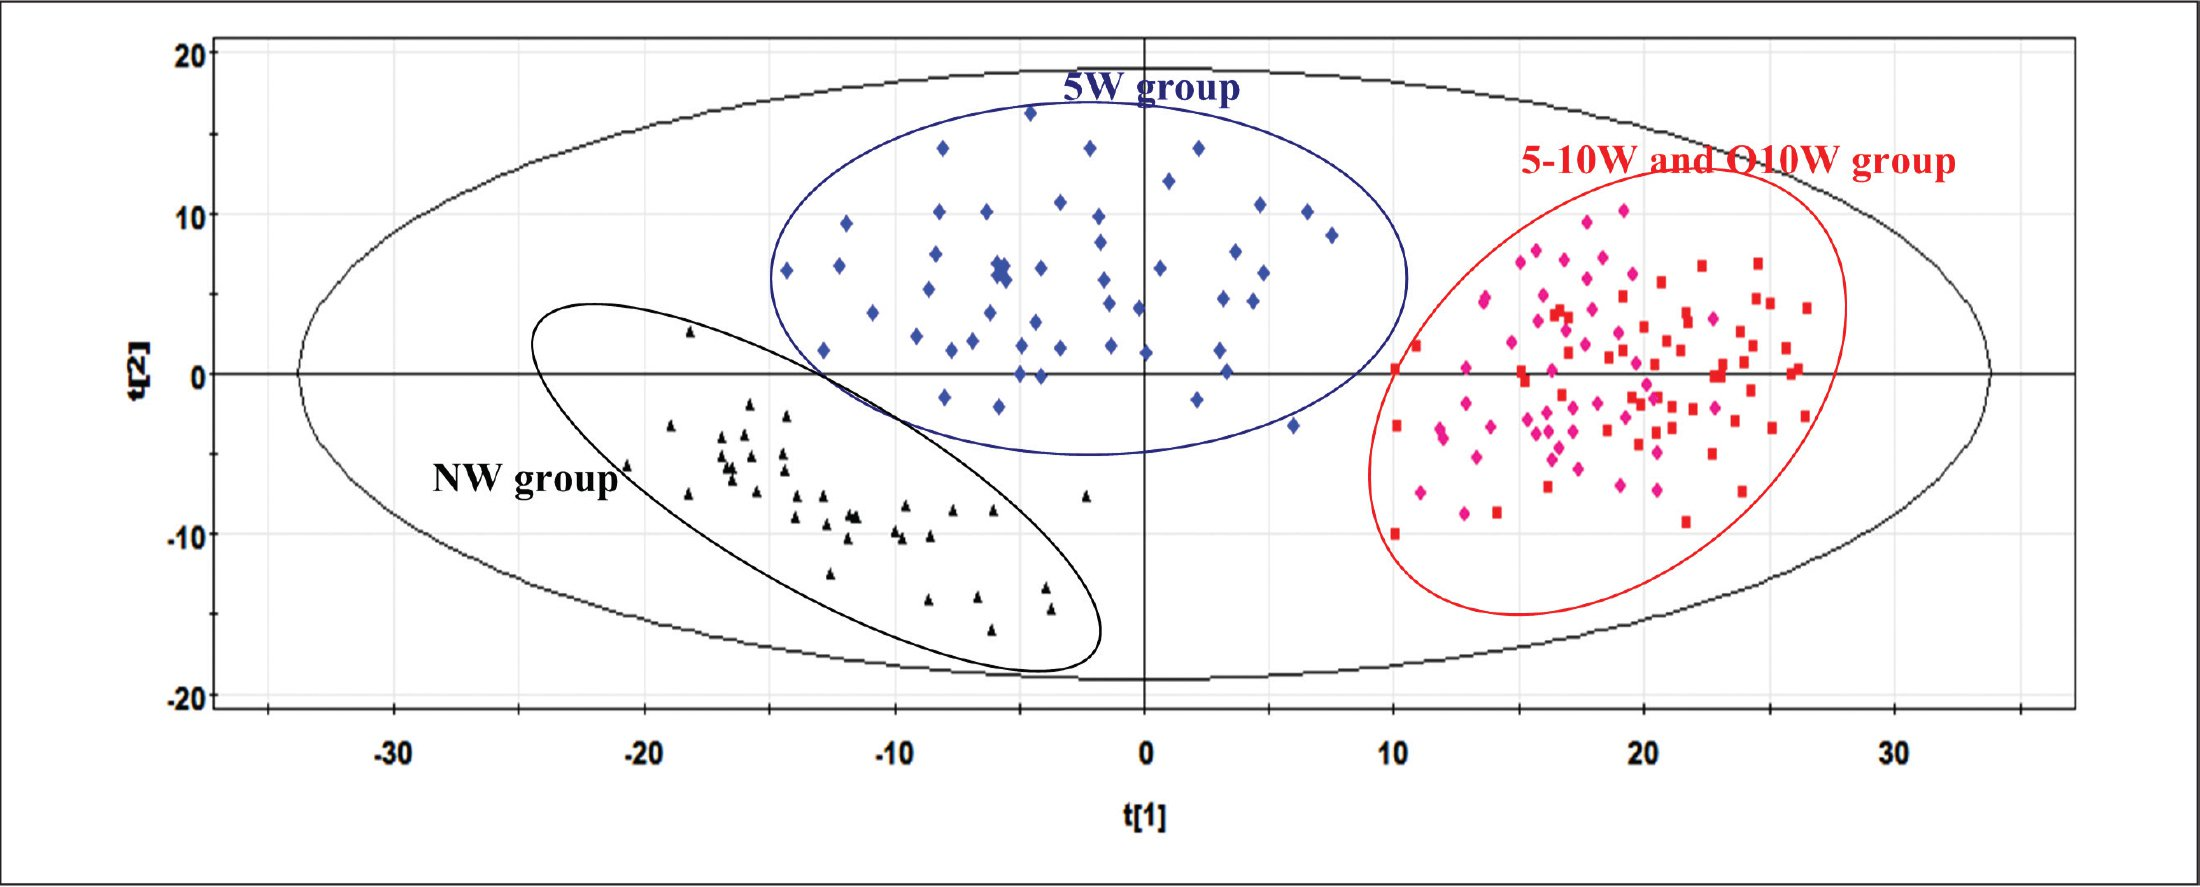 Principal components analysis plot of NW (black triangle), 5W (blue diamond), 5–10W (purple diamond), and O10W (red square) groups. NW = no wearing of soft contact lenses; 5W = less than 5 years of wearing soft contact lenses; 5–10W = 5 to 10 years of wearing soft contact lenses; O10W = more than 10 years of wearing soft contact lenses